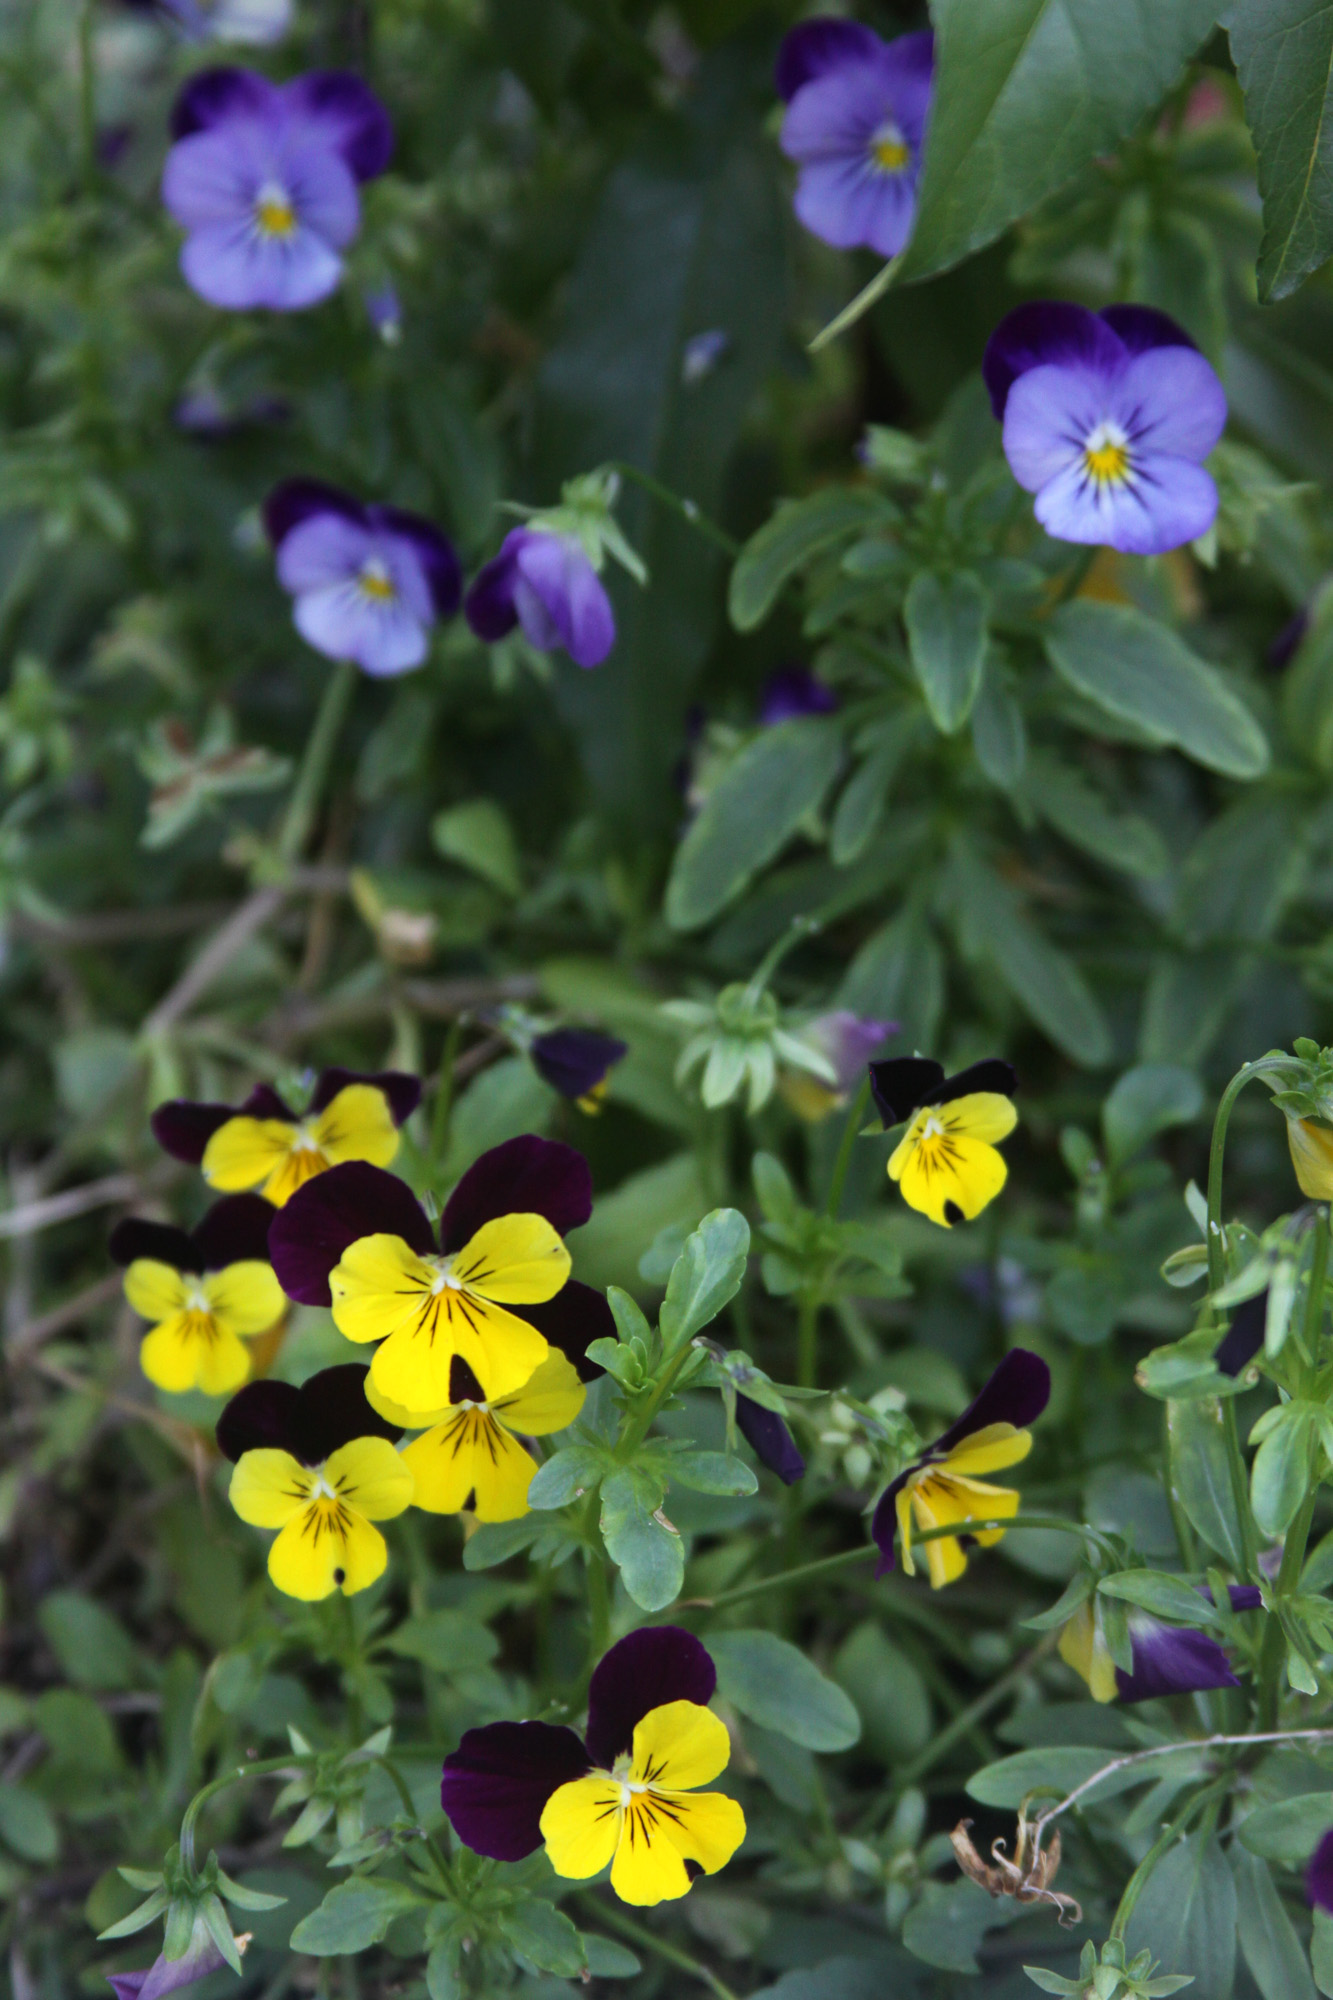 Viola Flowers Come in So Many Color Combinations and When They Self Seed You Get Some Surprises